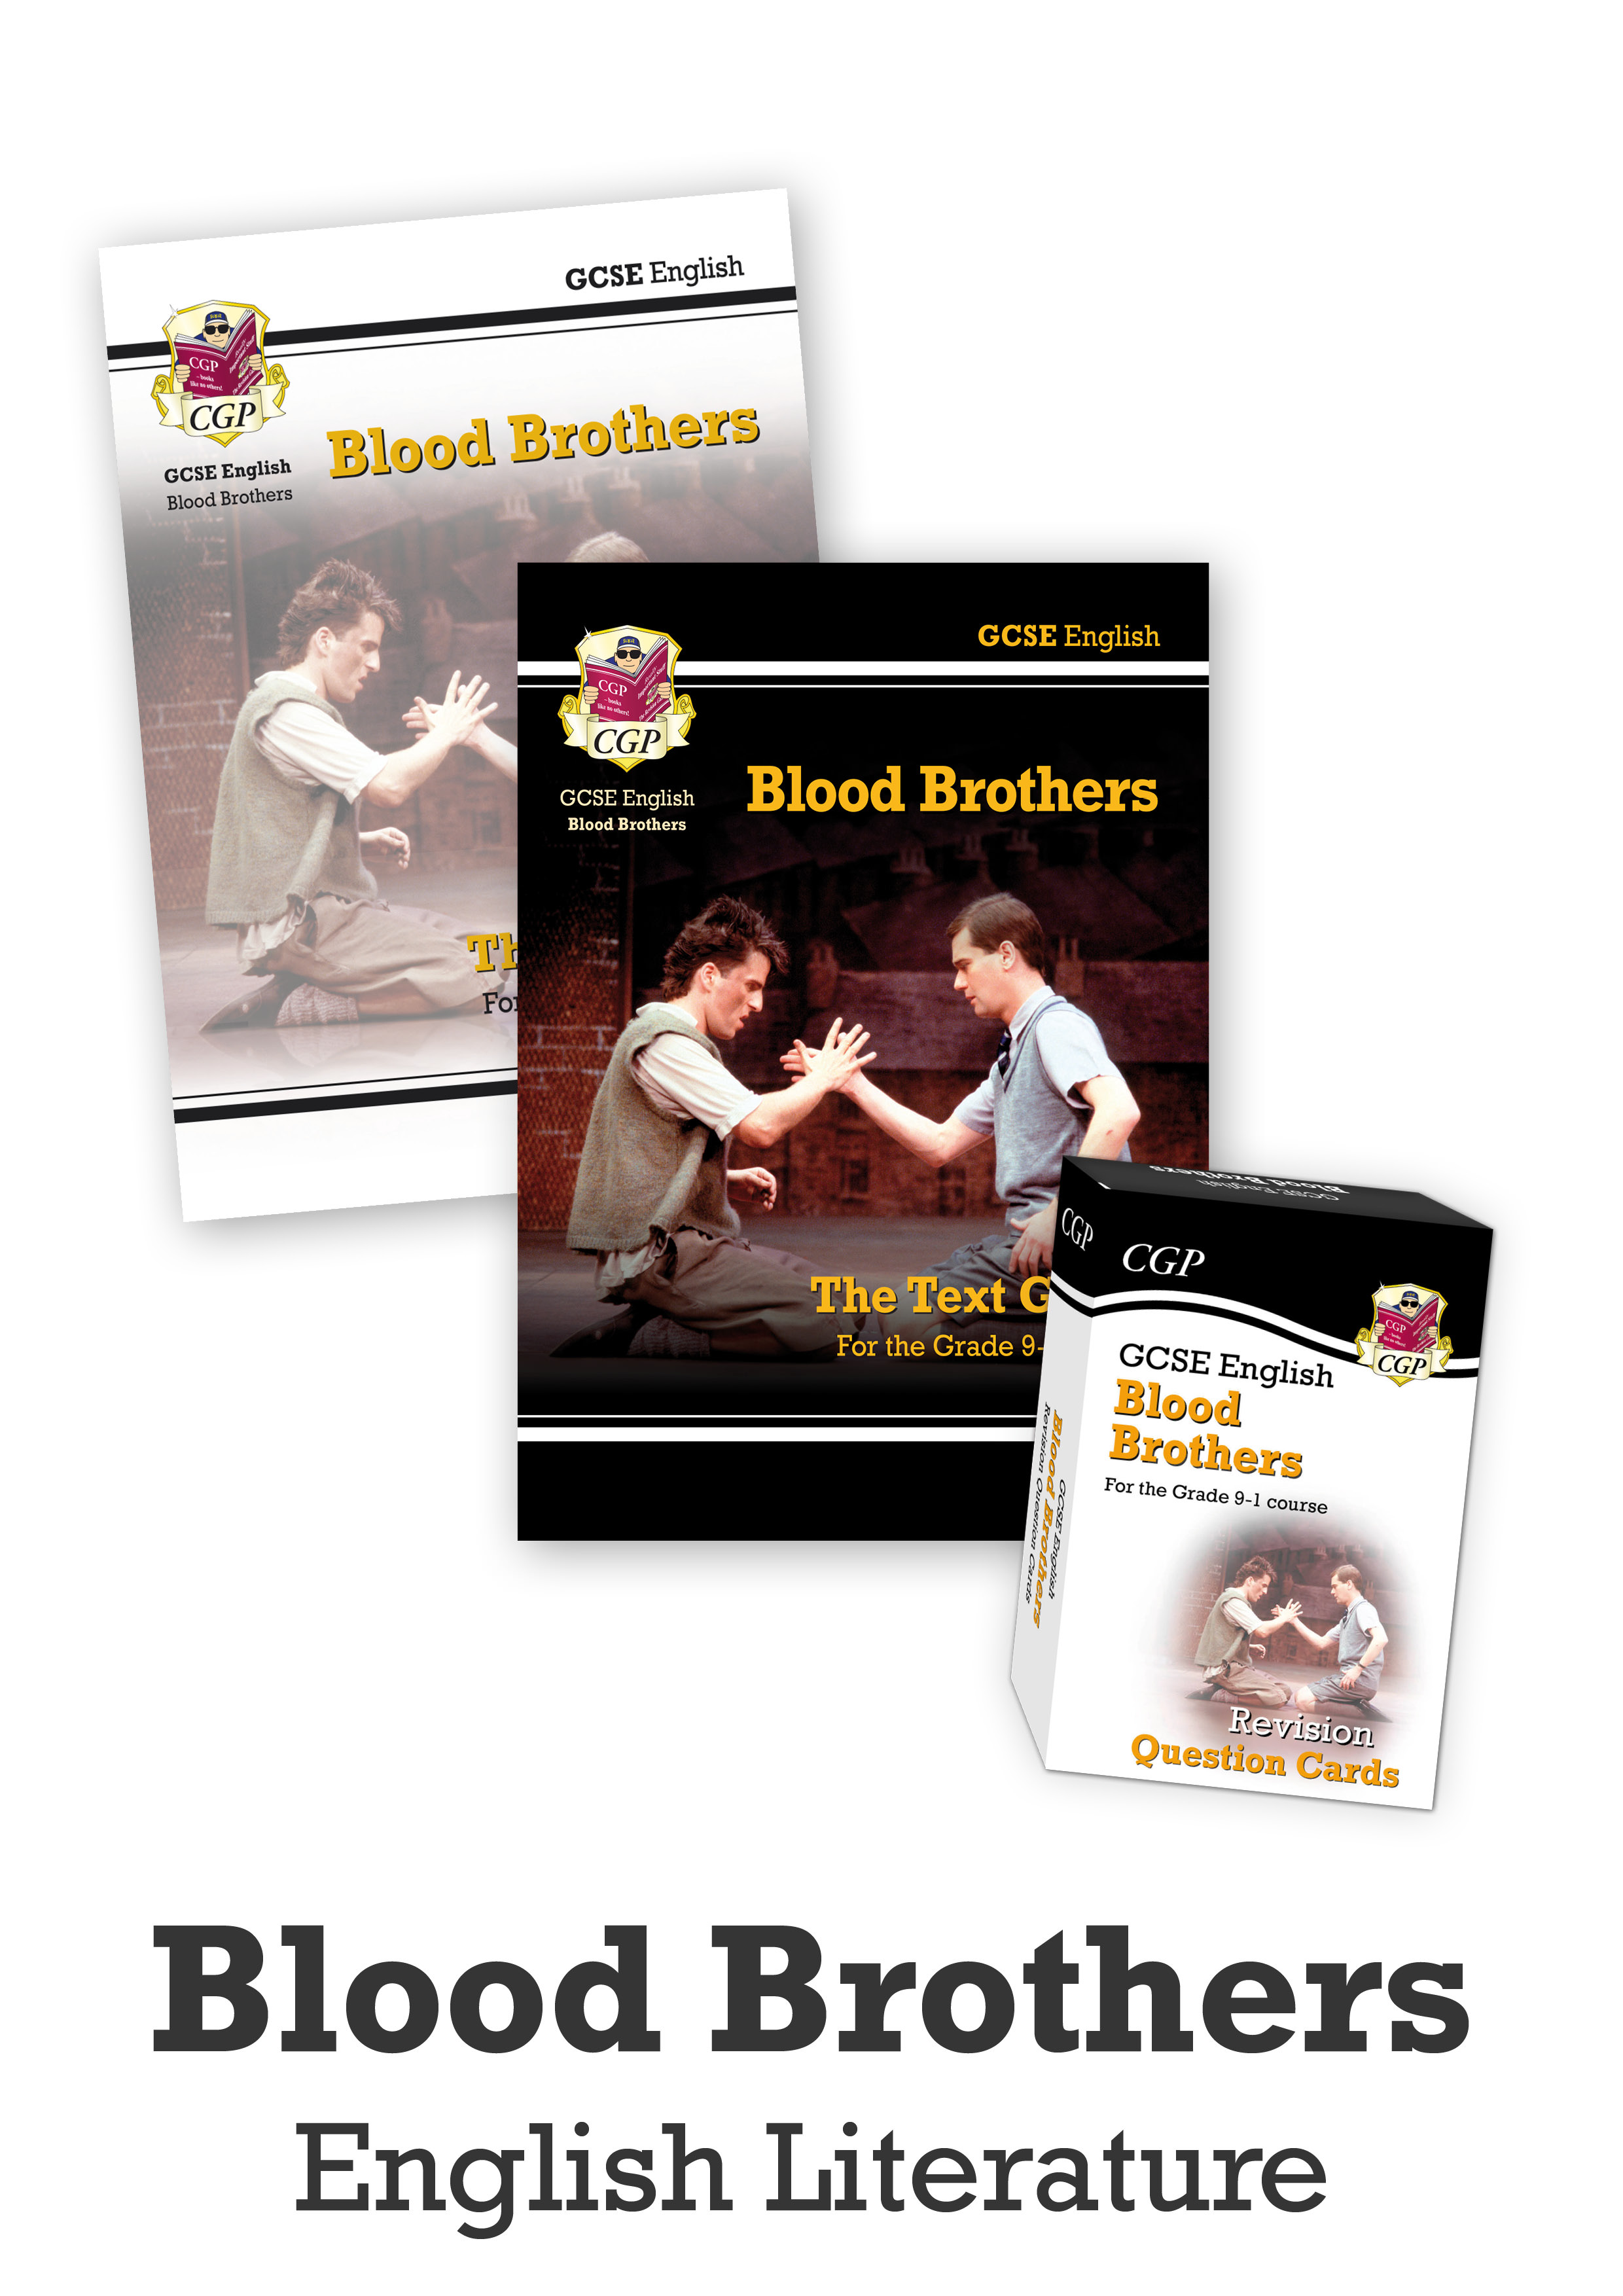 ETBBCUB41 - GCSE Home Learning Essentials Bundle: English Literature - Blood Brothers